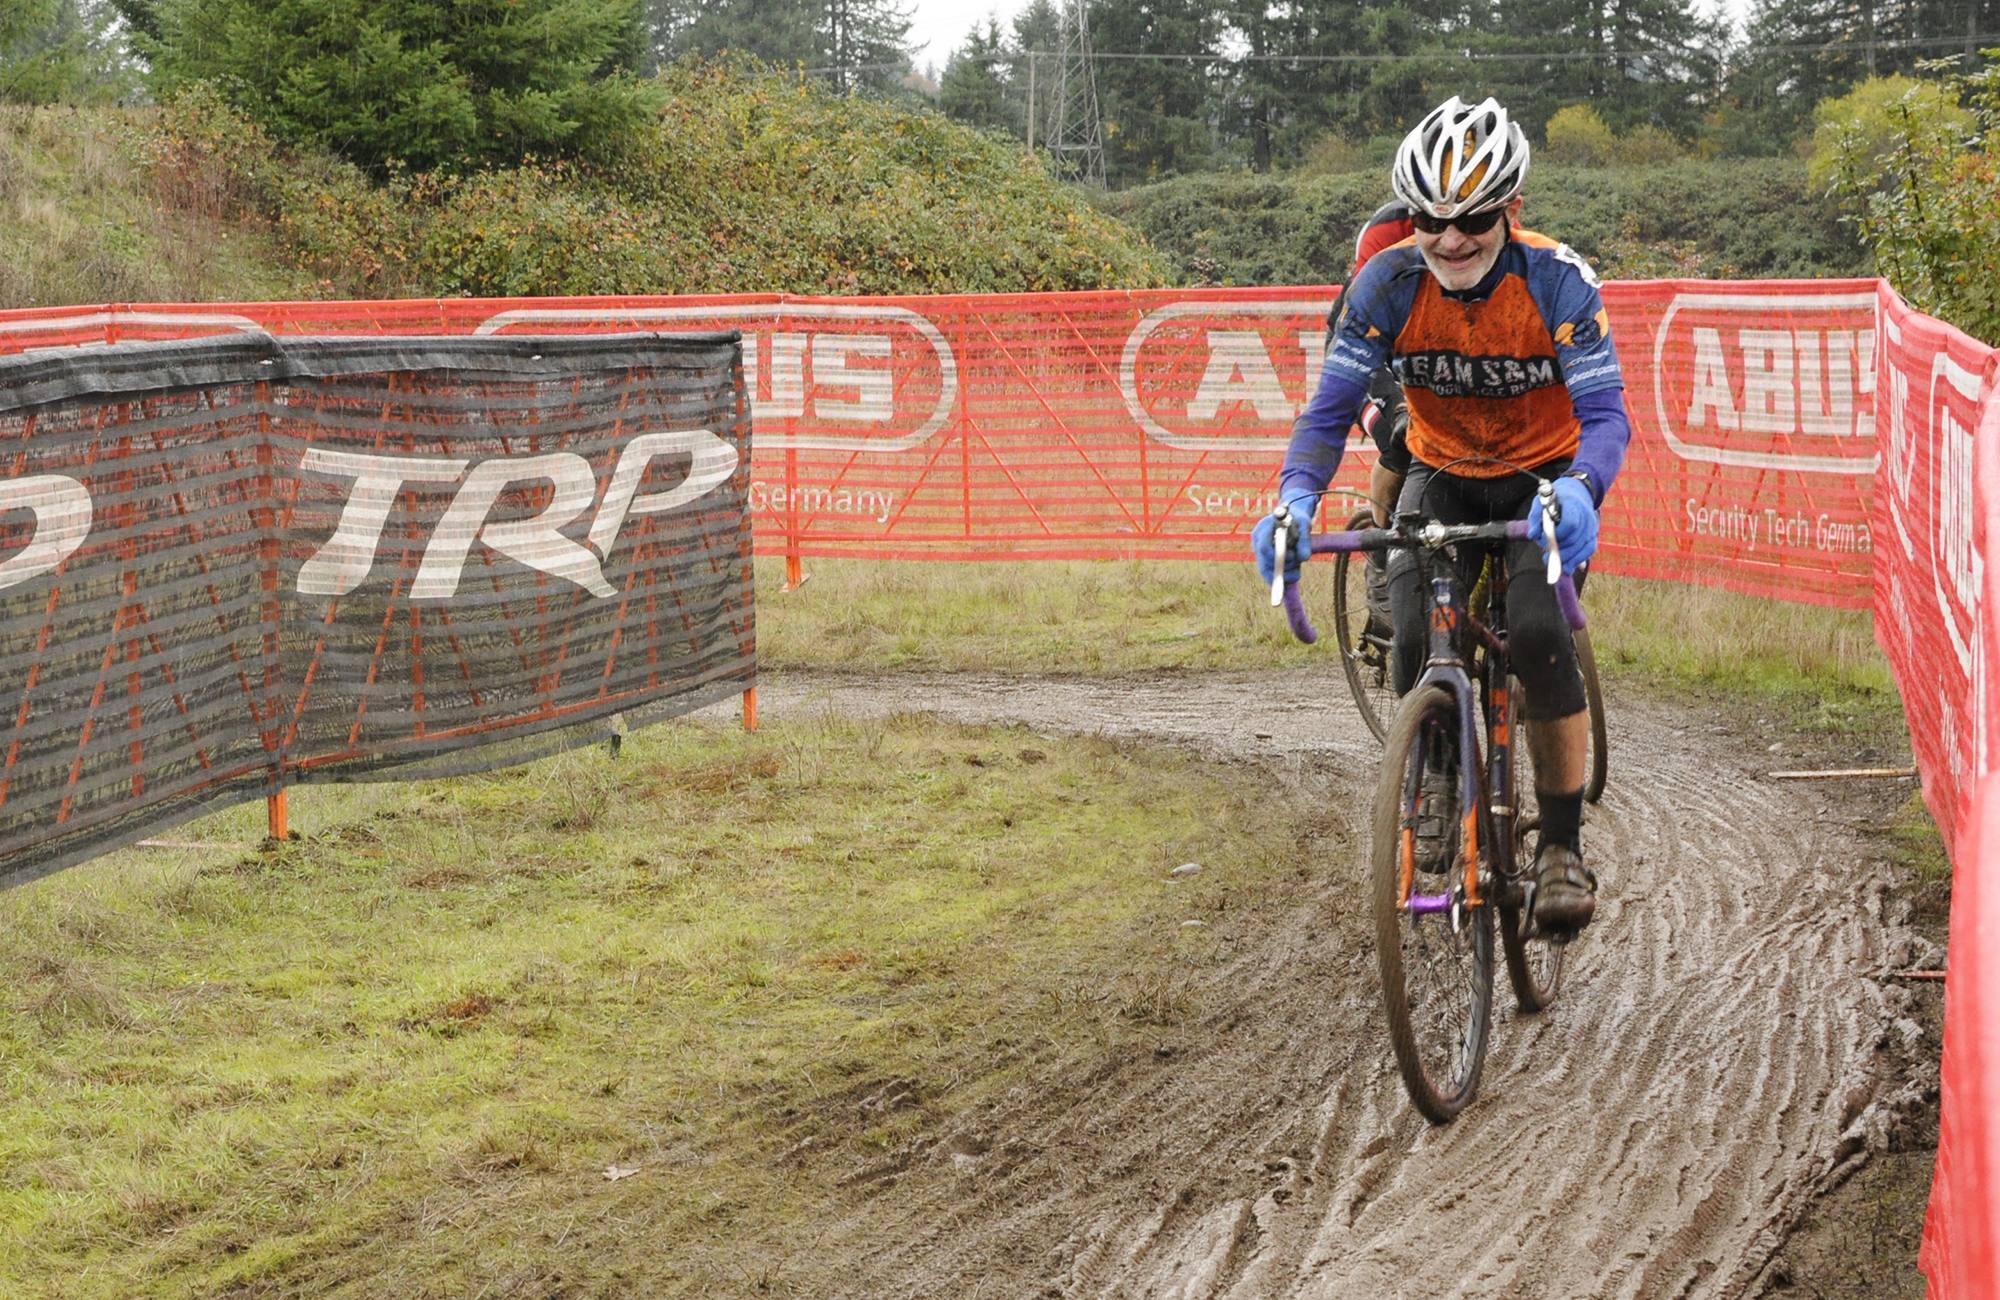 SellwoodCycle_CCBP_01